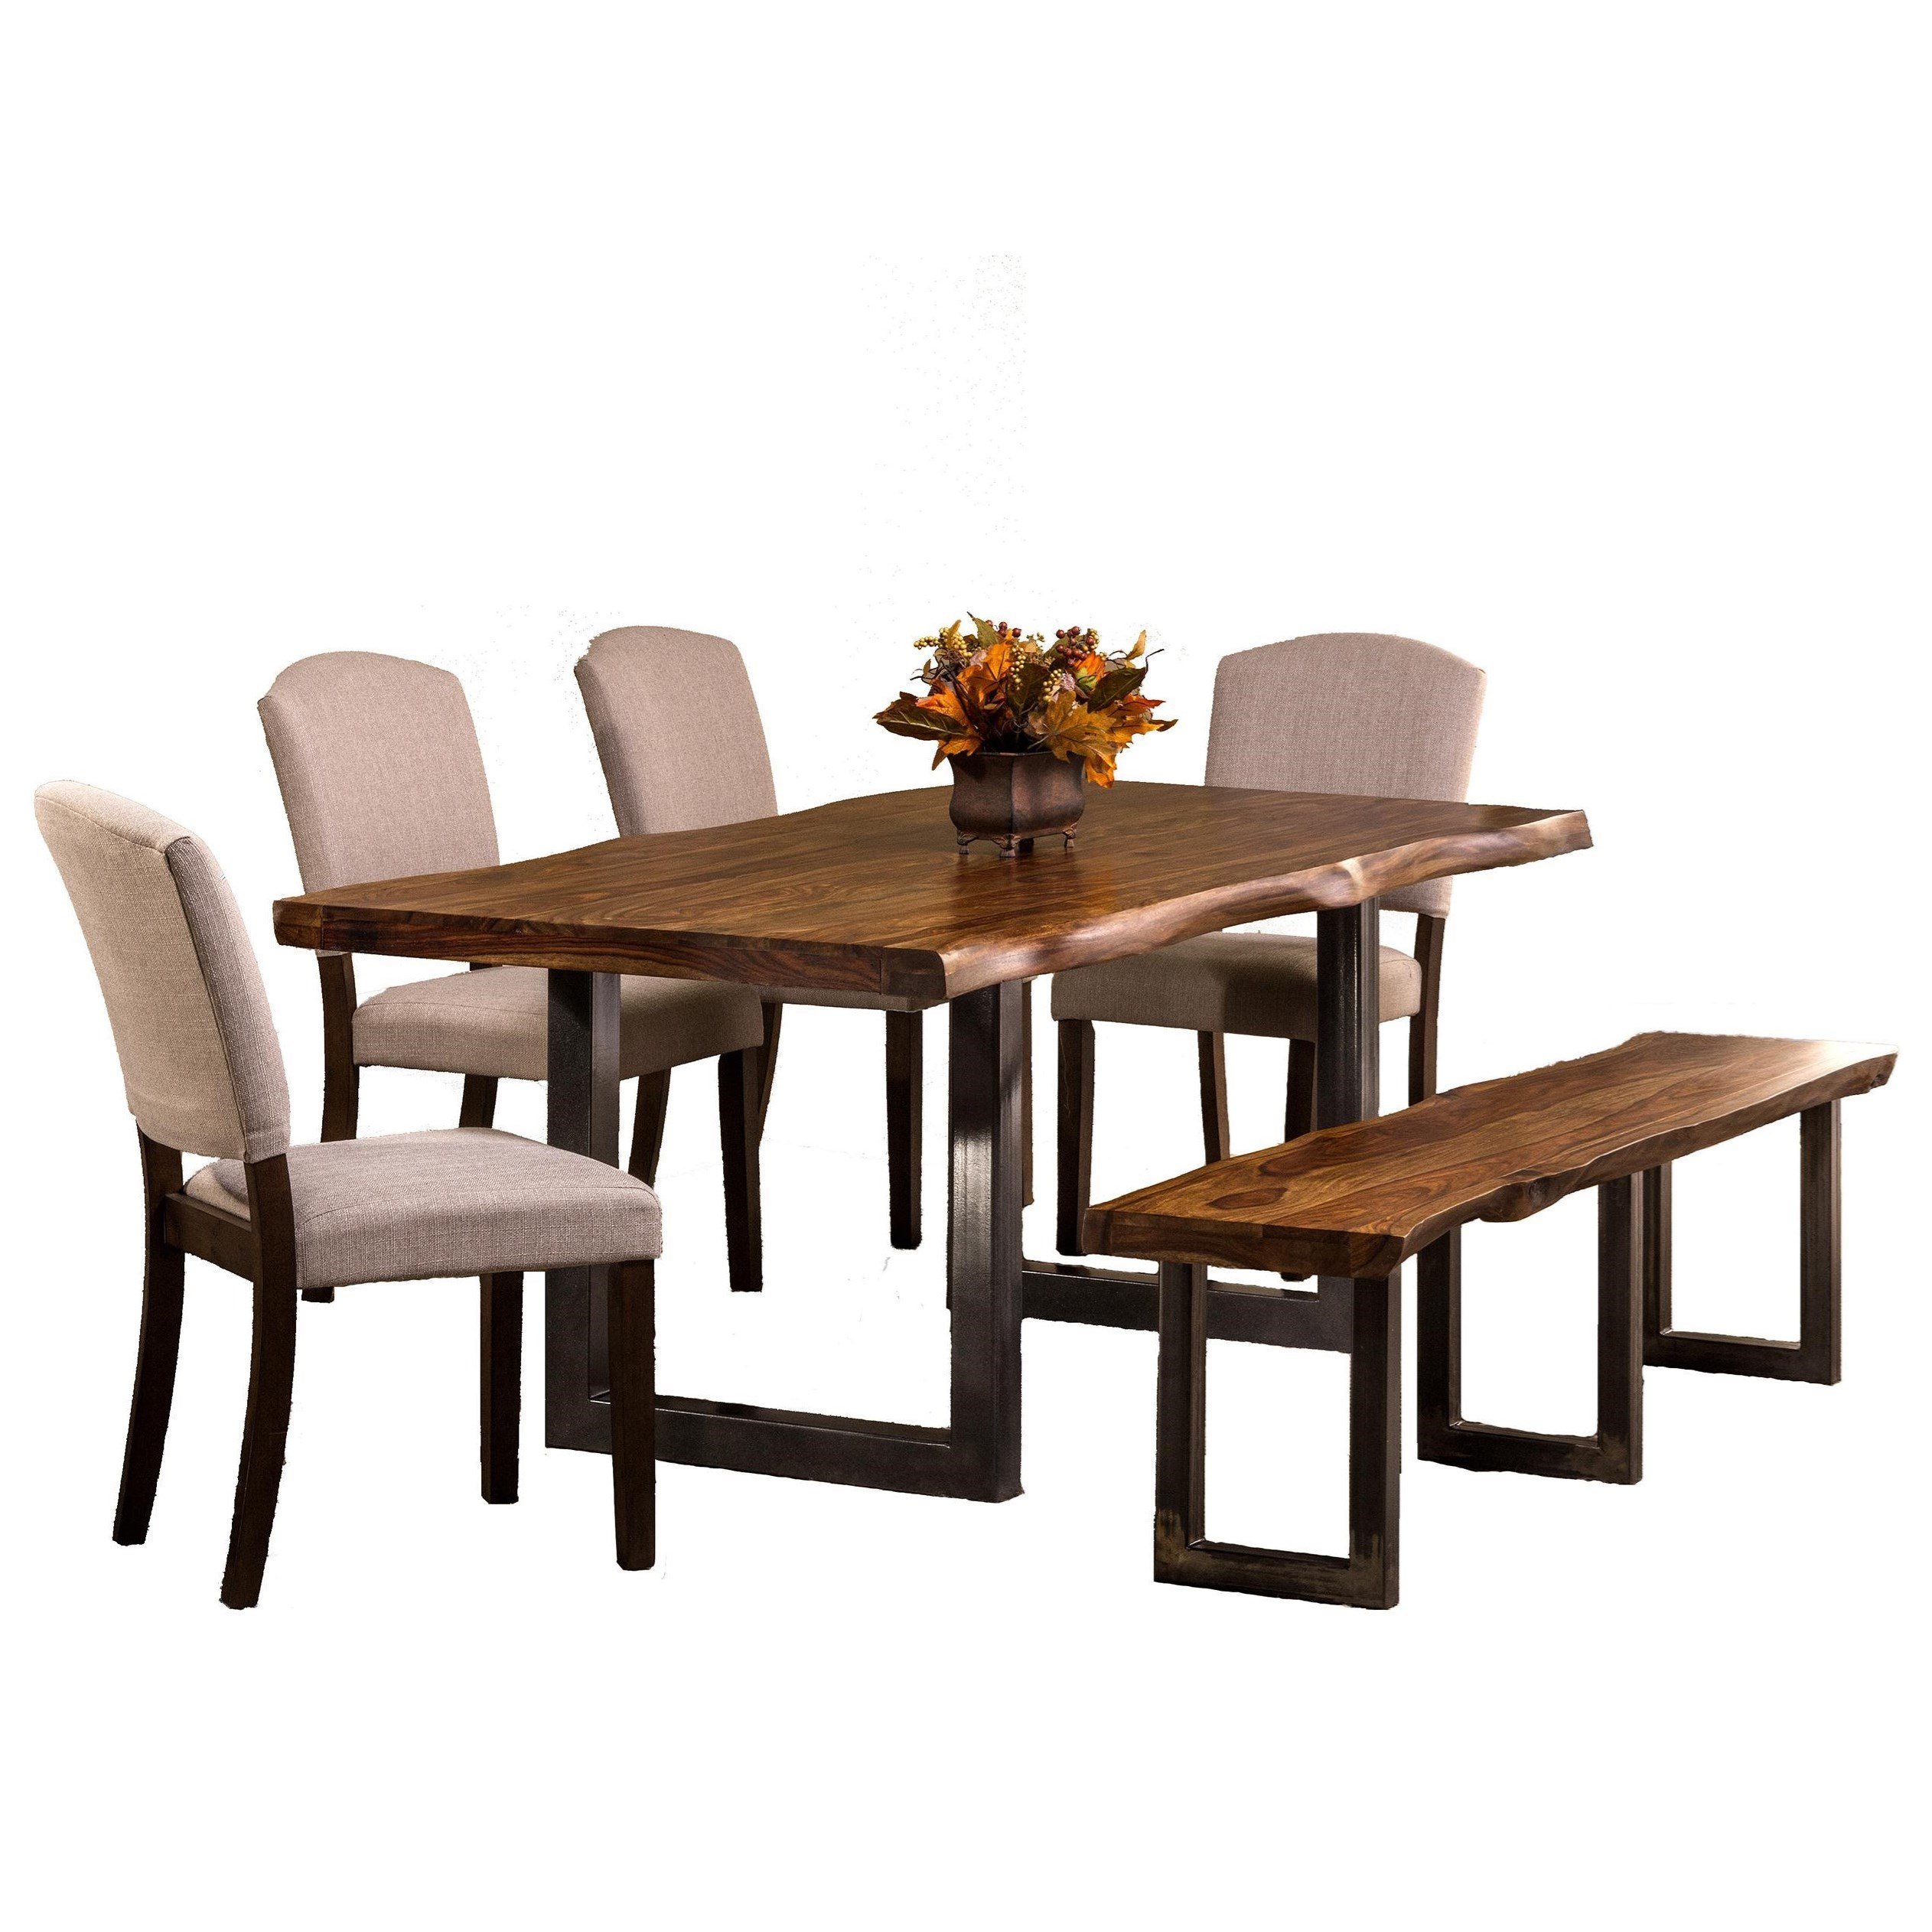 Emerson  6-Piece Rectangle Dining Set by Hillsdale at Johnny Janosik